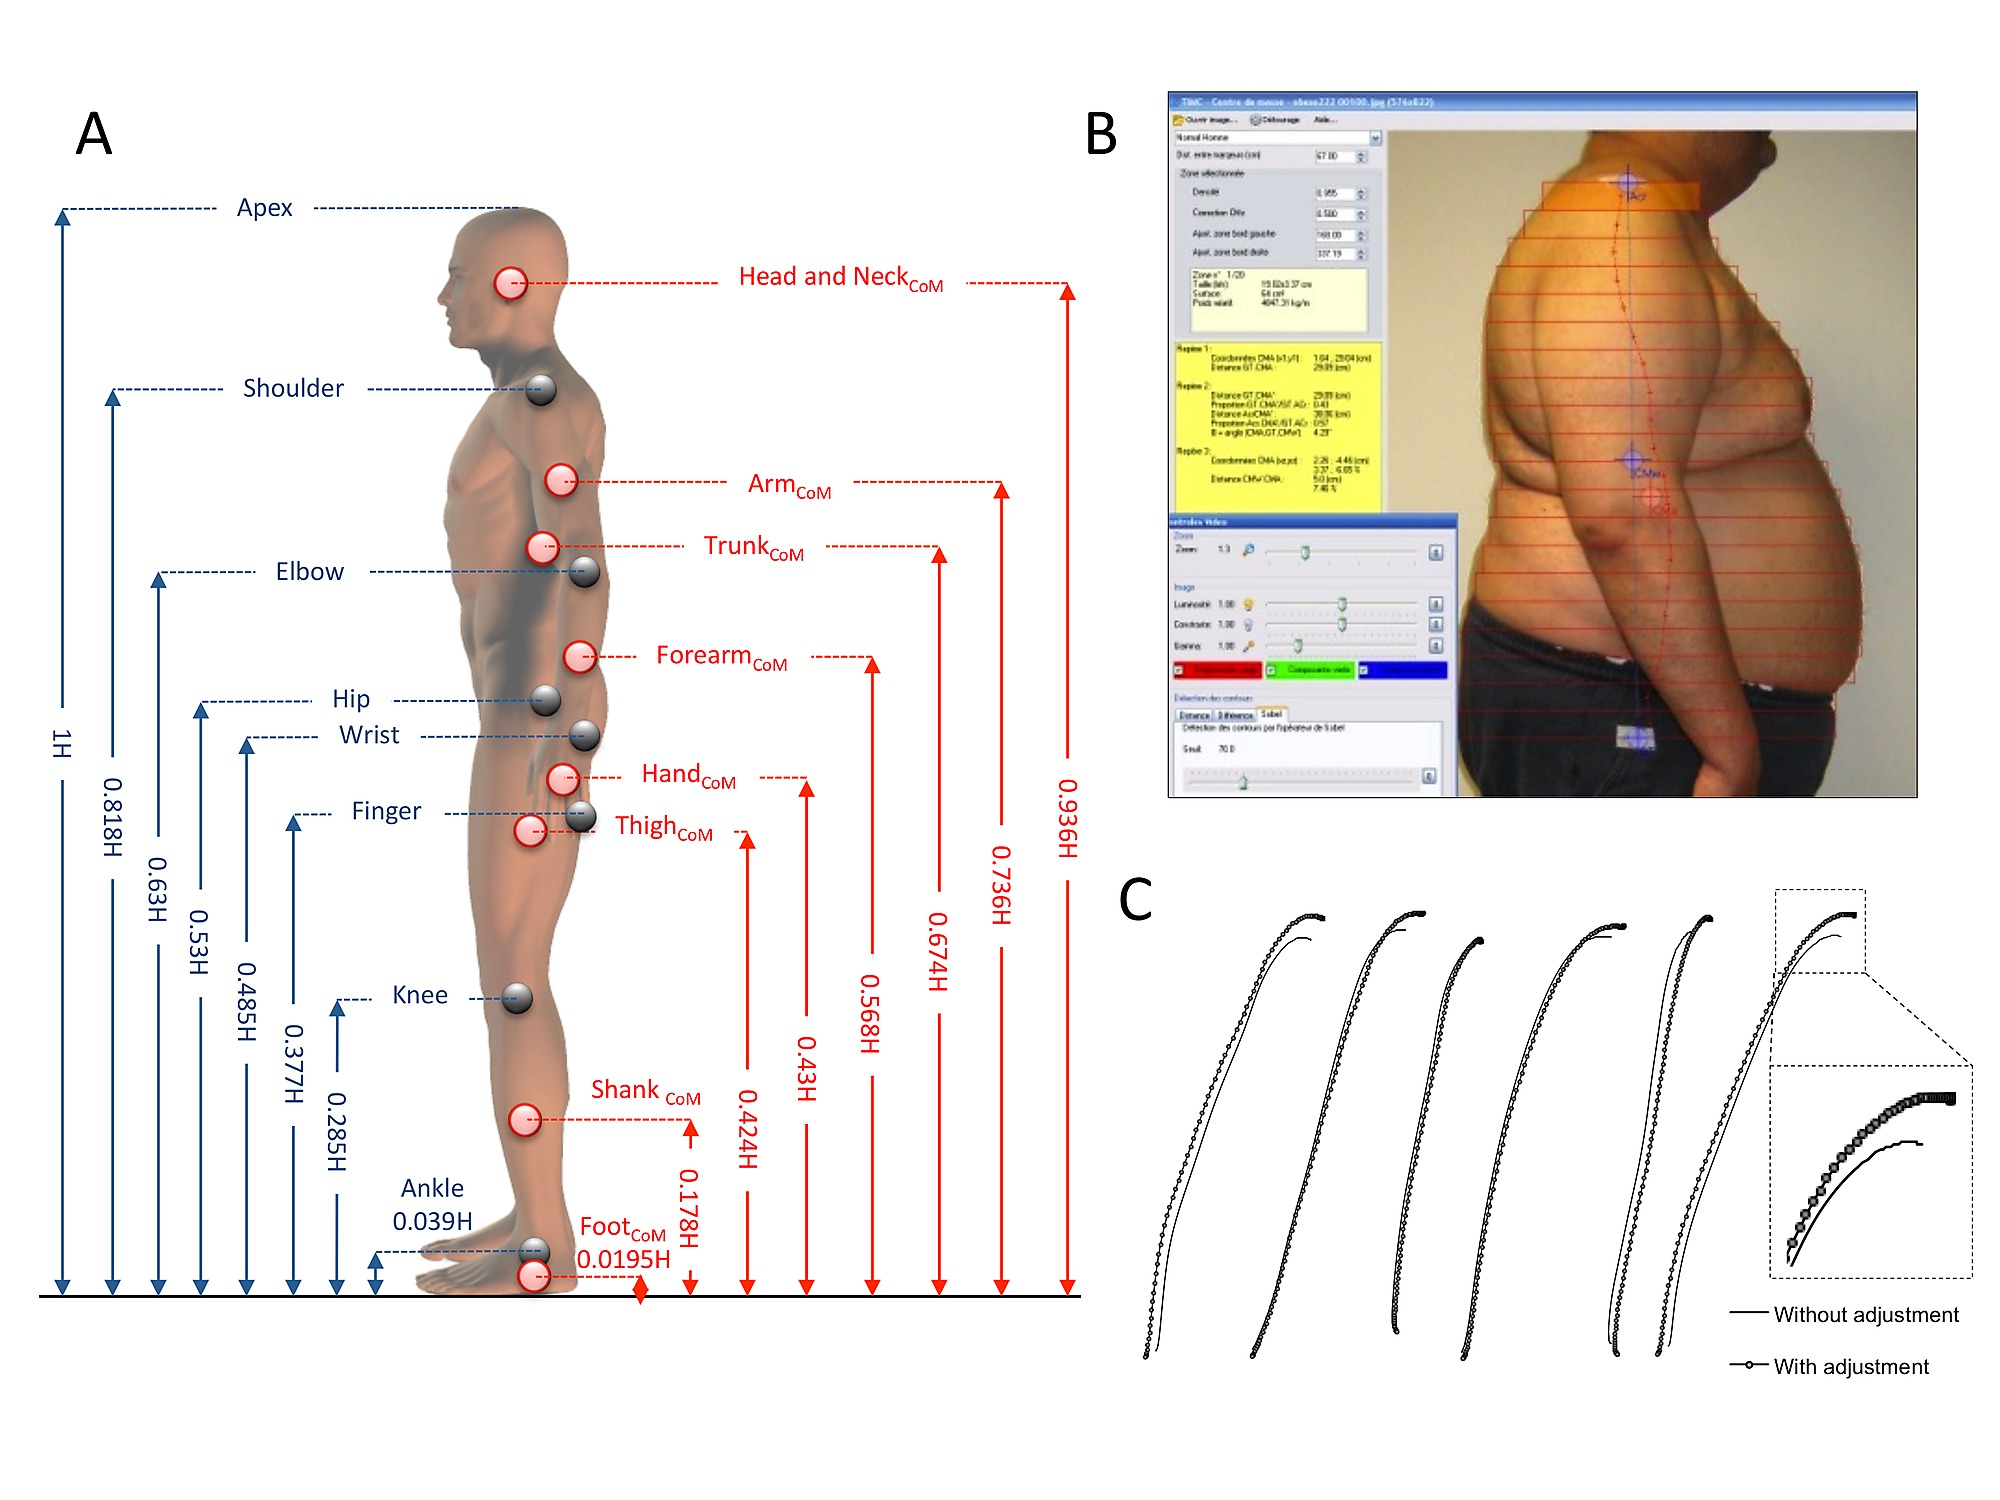 Origins Of Balance Disorders During A Daily Living Movement In Obese